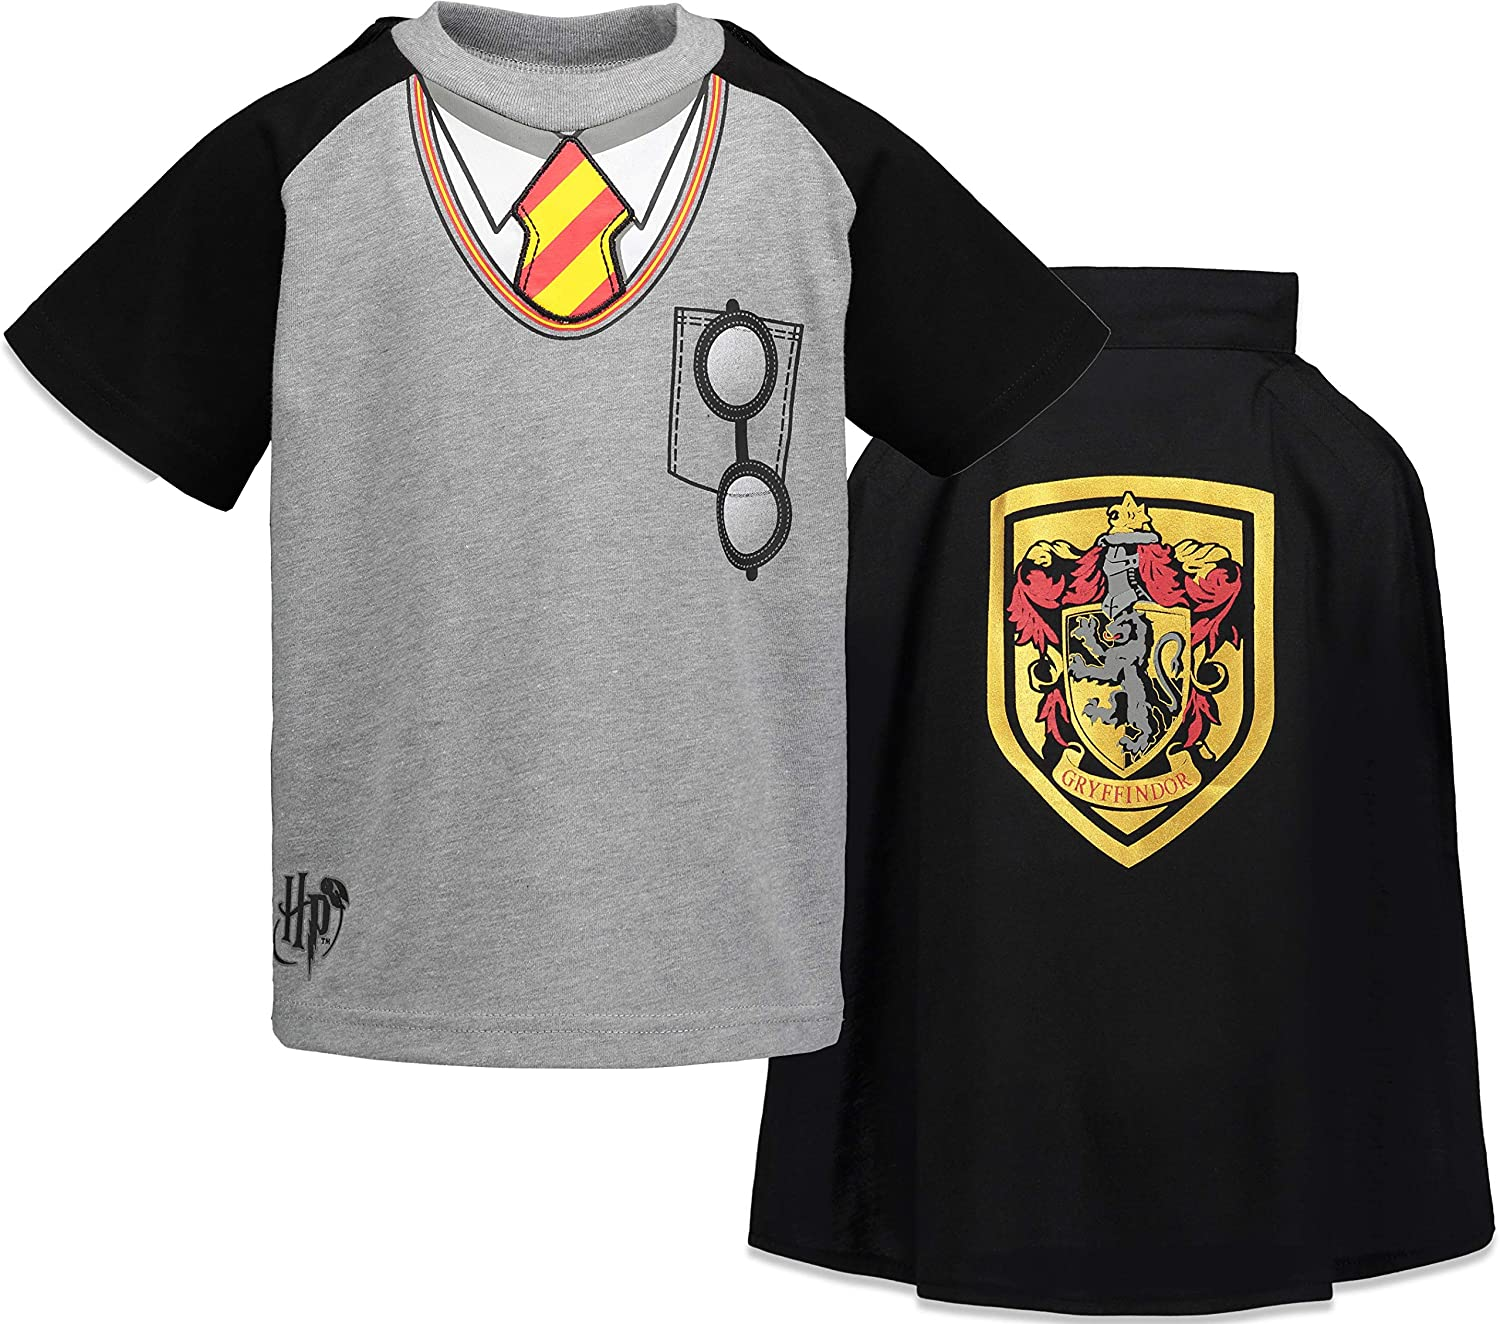 Harry Potter Boys T Shirt